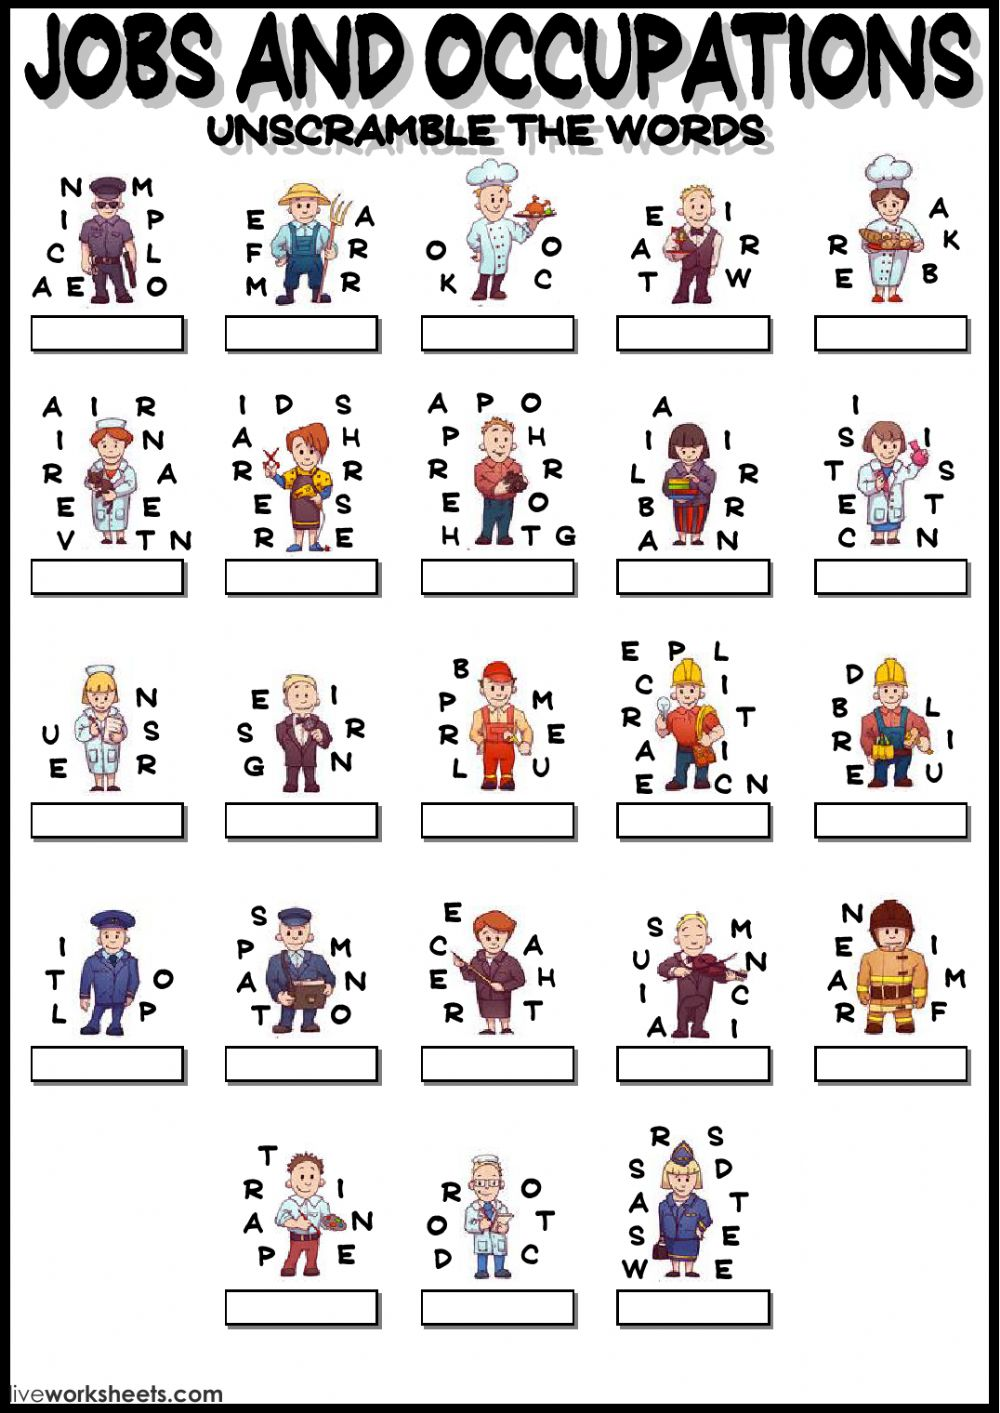 Jobs and occupations - unscramble - Interactive worksheet